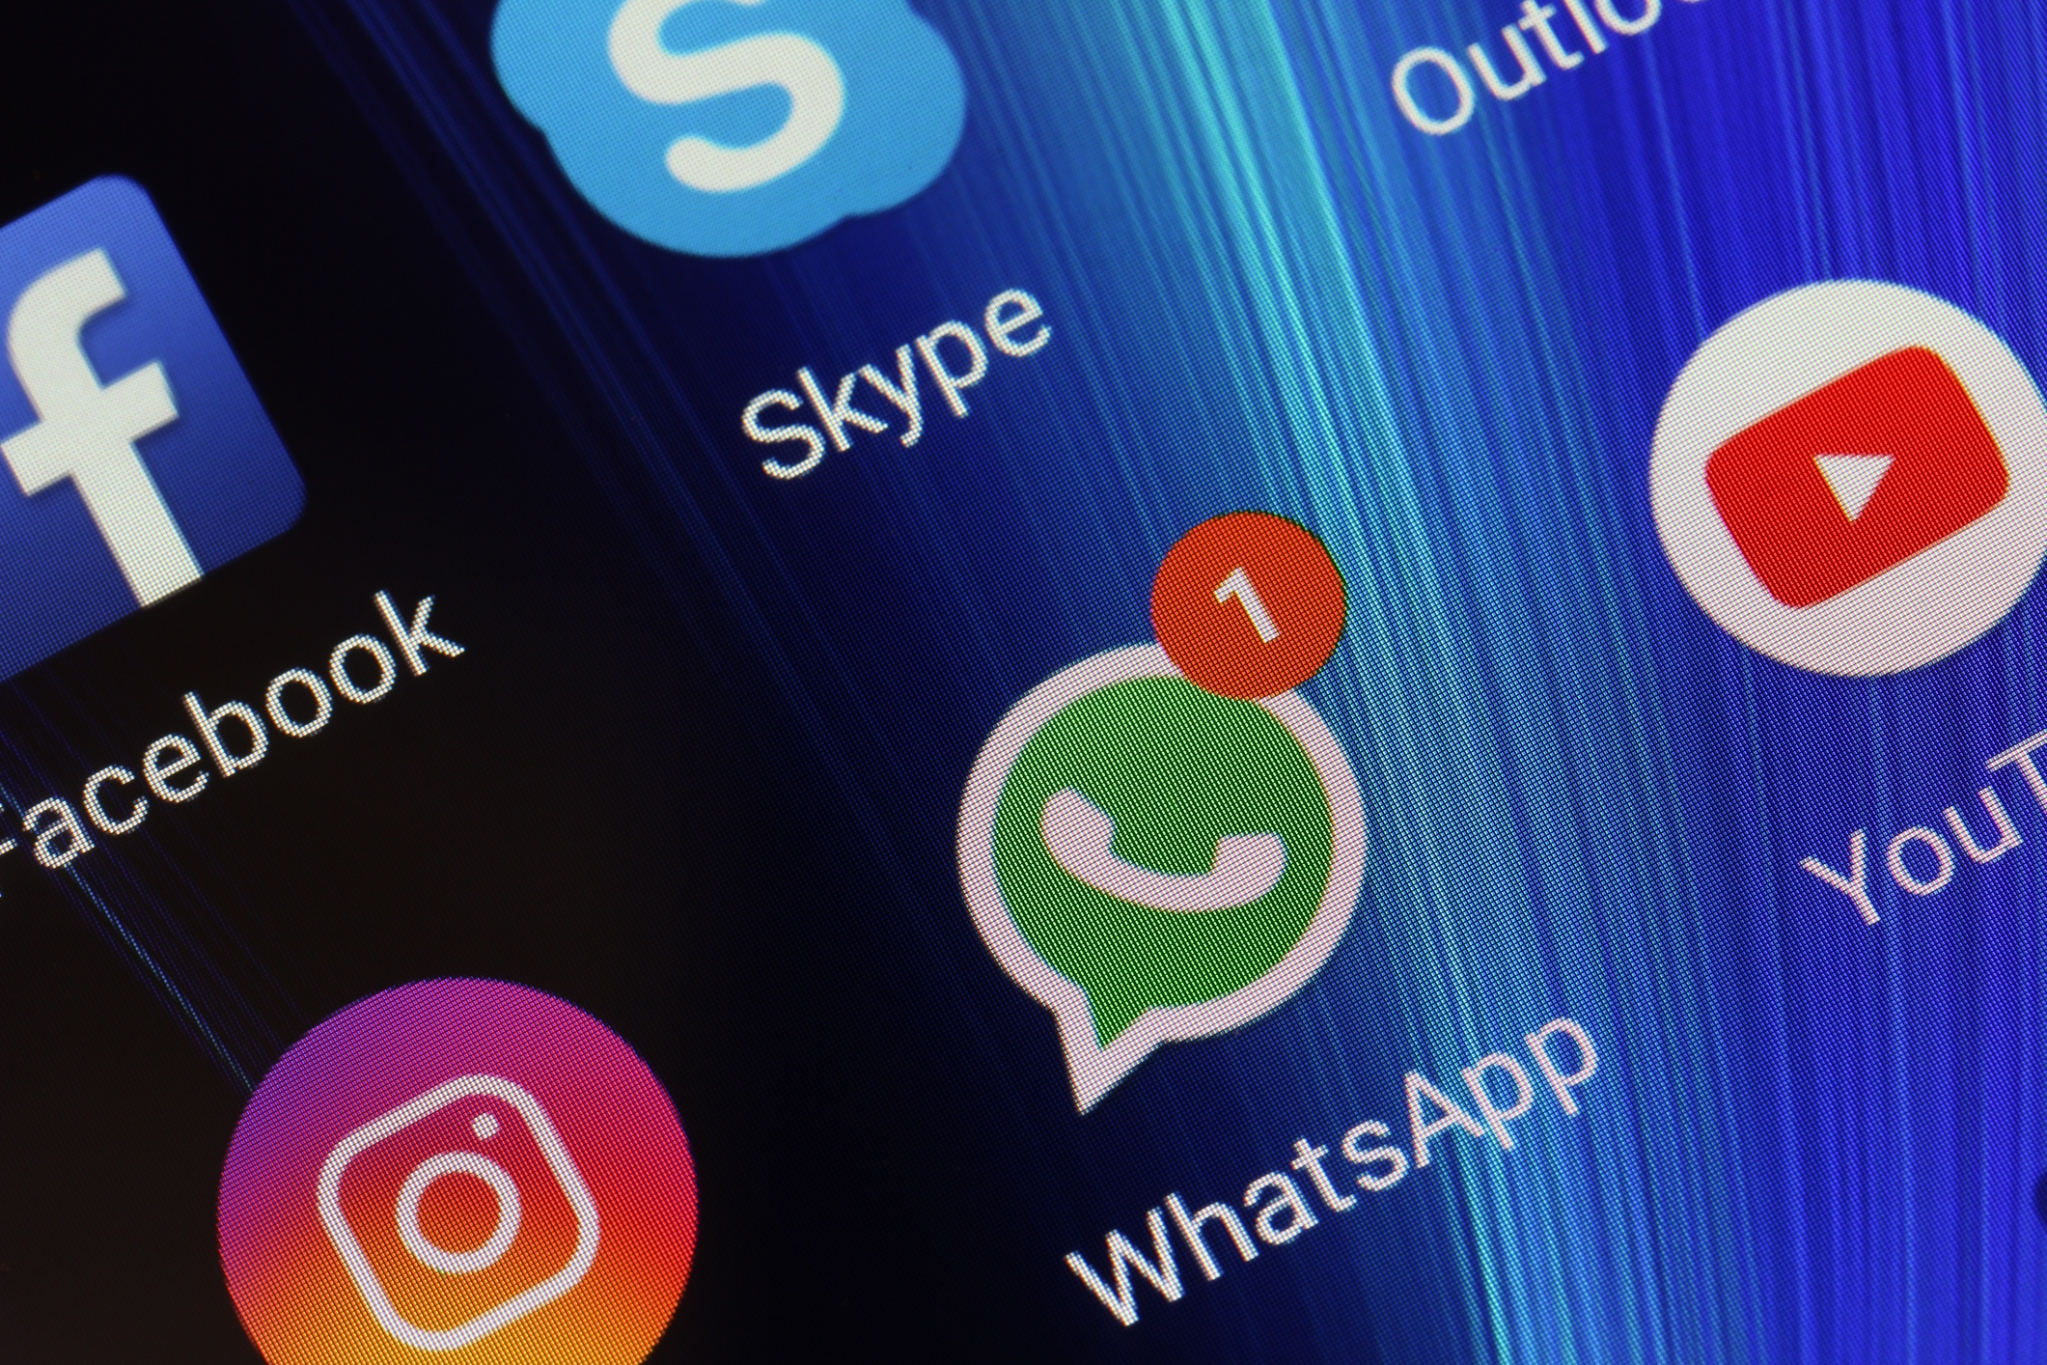 WhatsApp Won't Let You Take Screenshots When Fingerprint Enabled